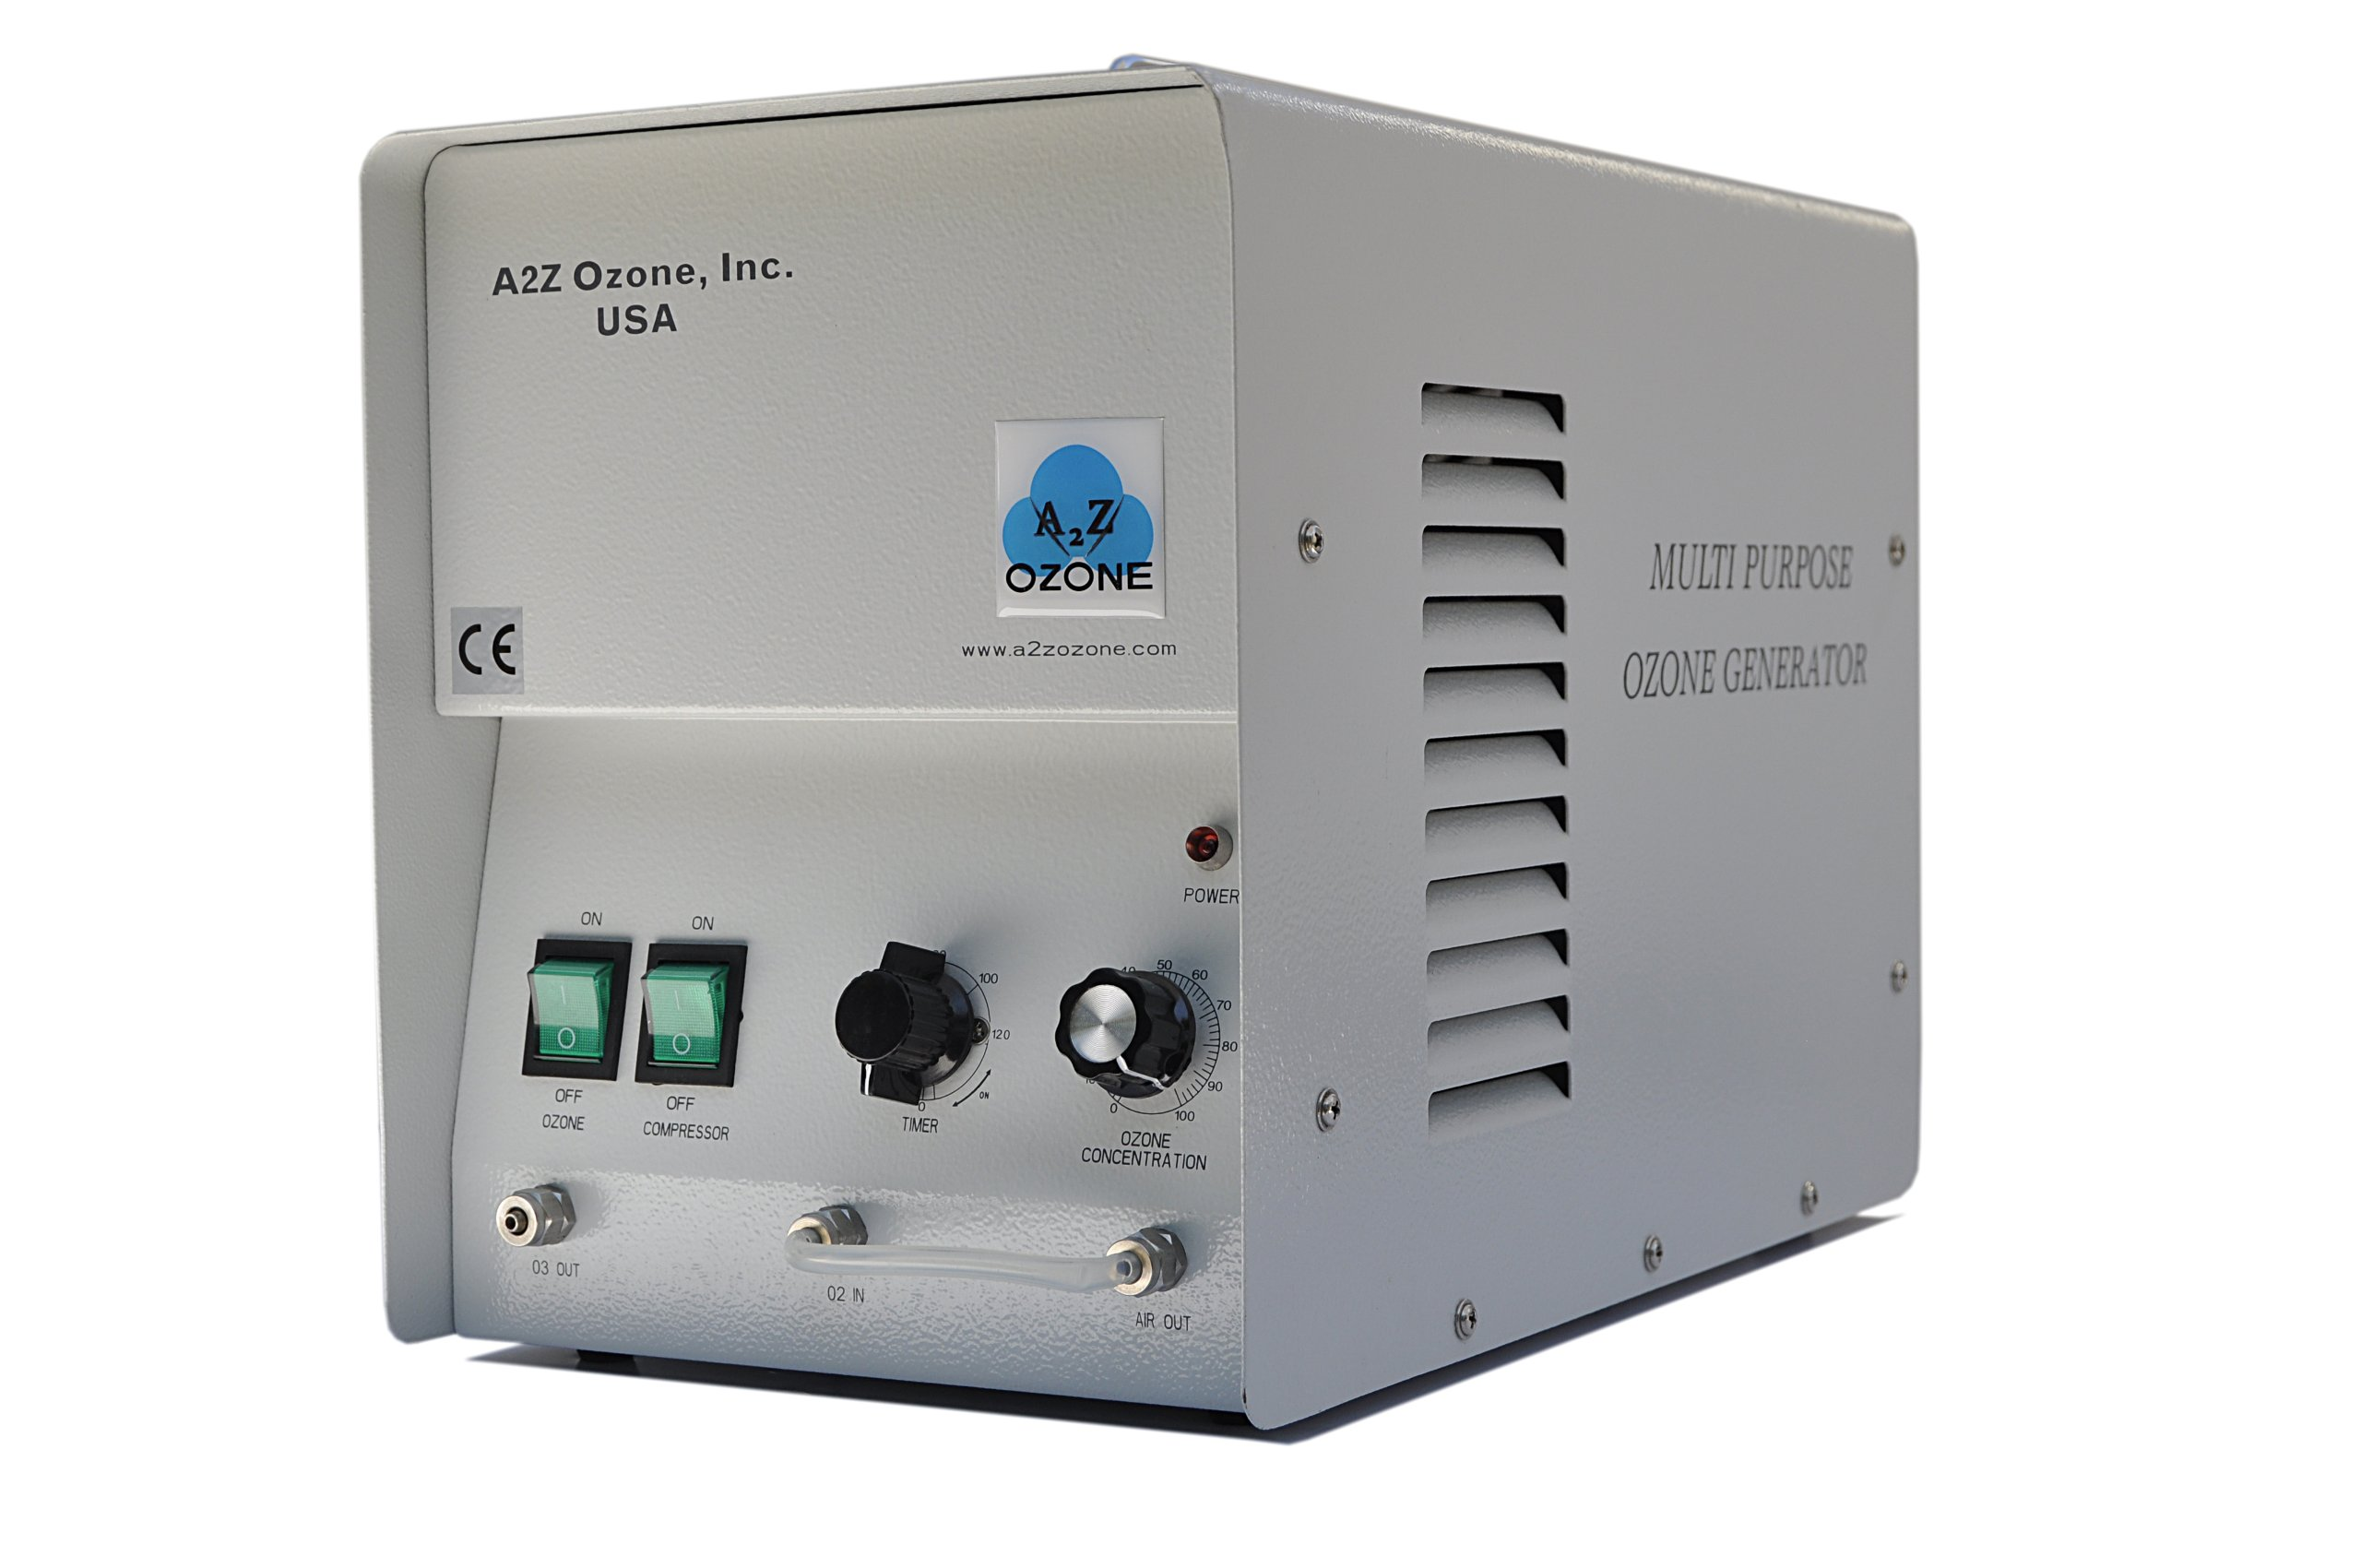 A2Z Ozone MP 8000 110V Multi-Purpose Ozone Generator